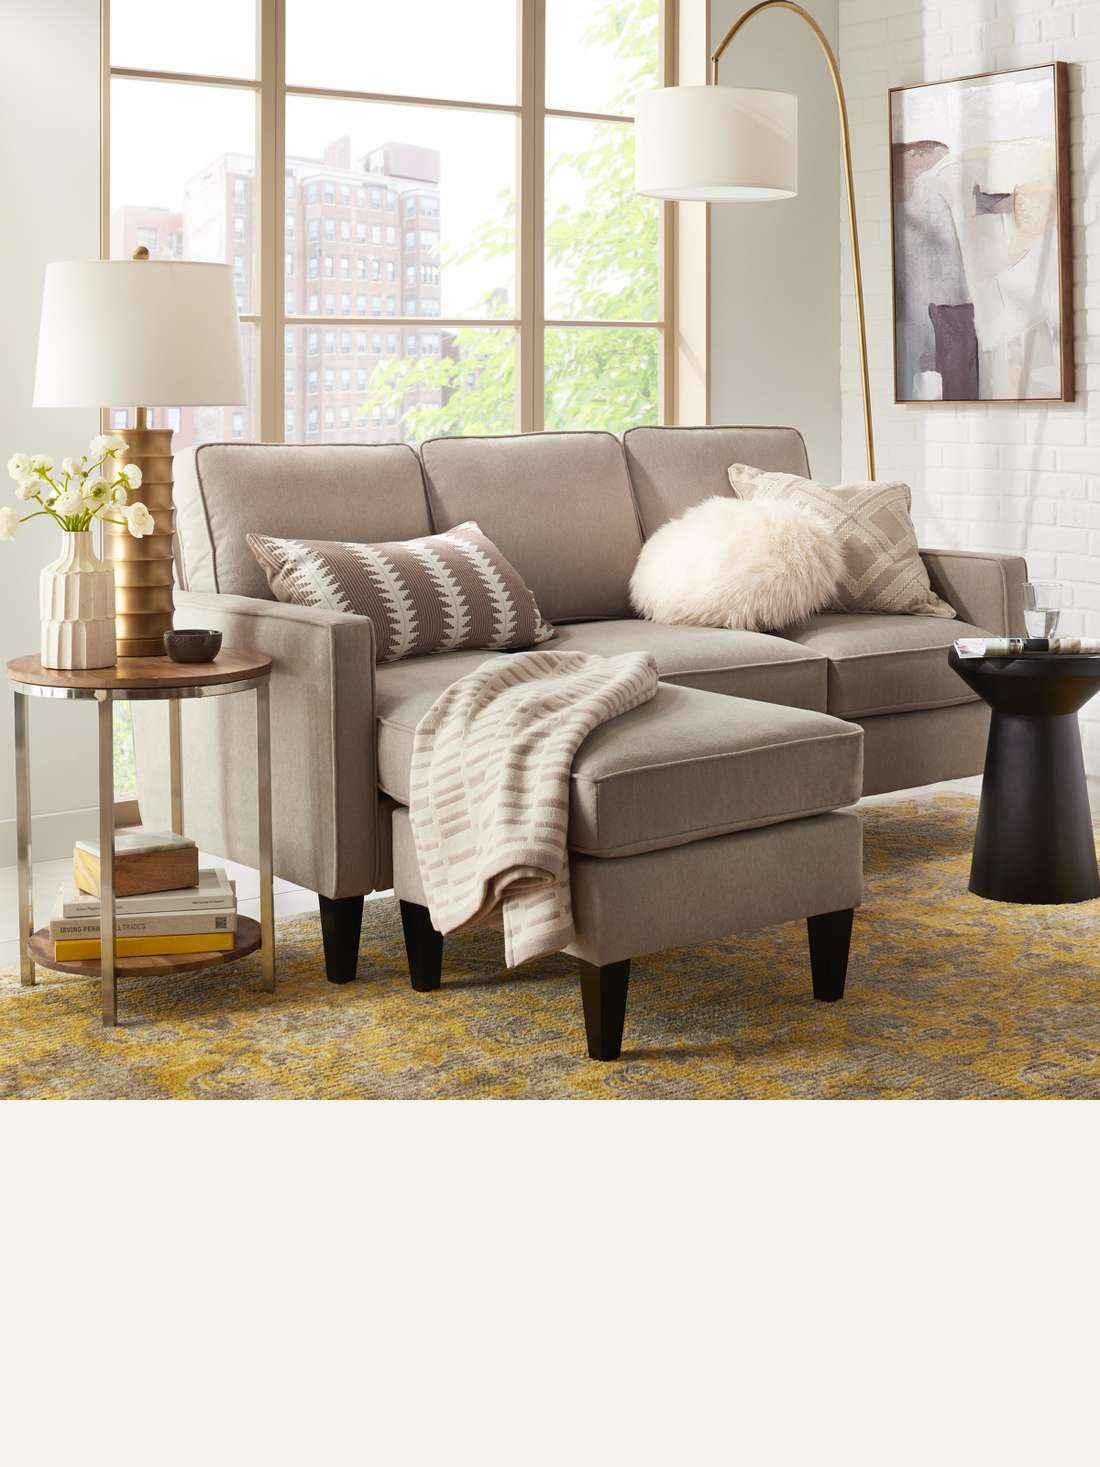 sofas sectionals target accent table room essentials smaller offer lots comfy seating for small spaces while larger ones are best open floor plans browse couch and loveseat set